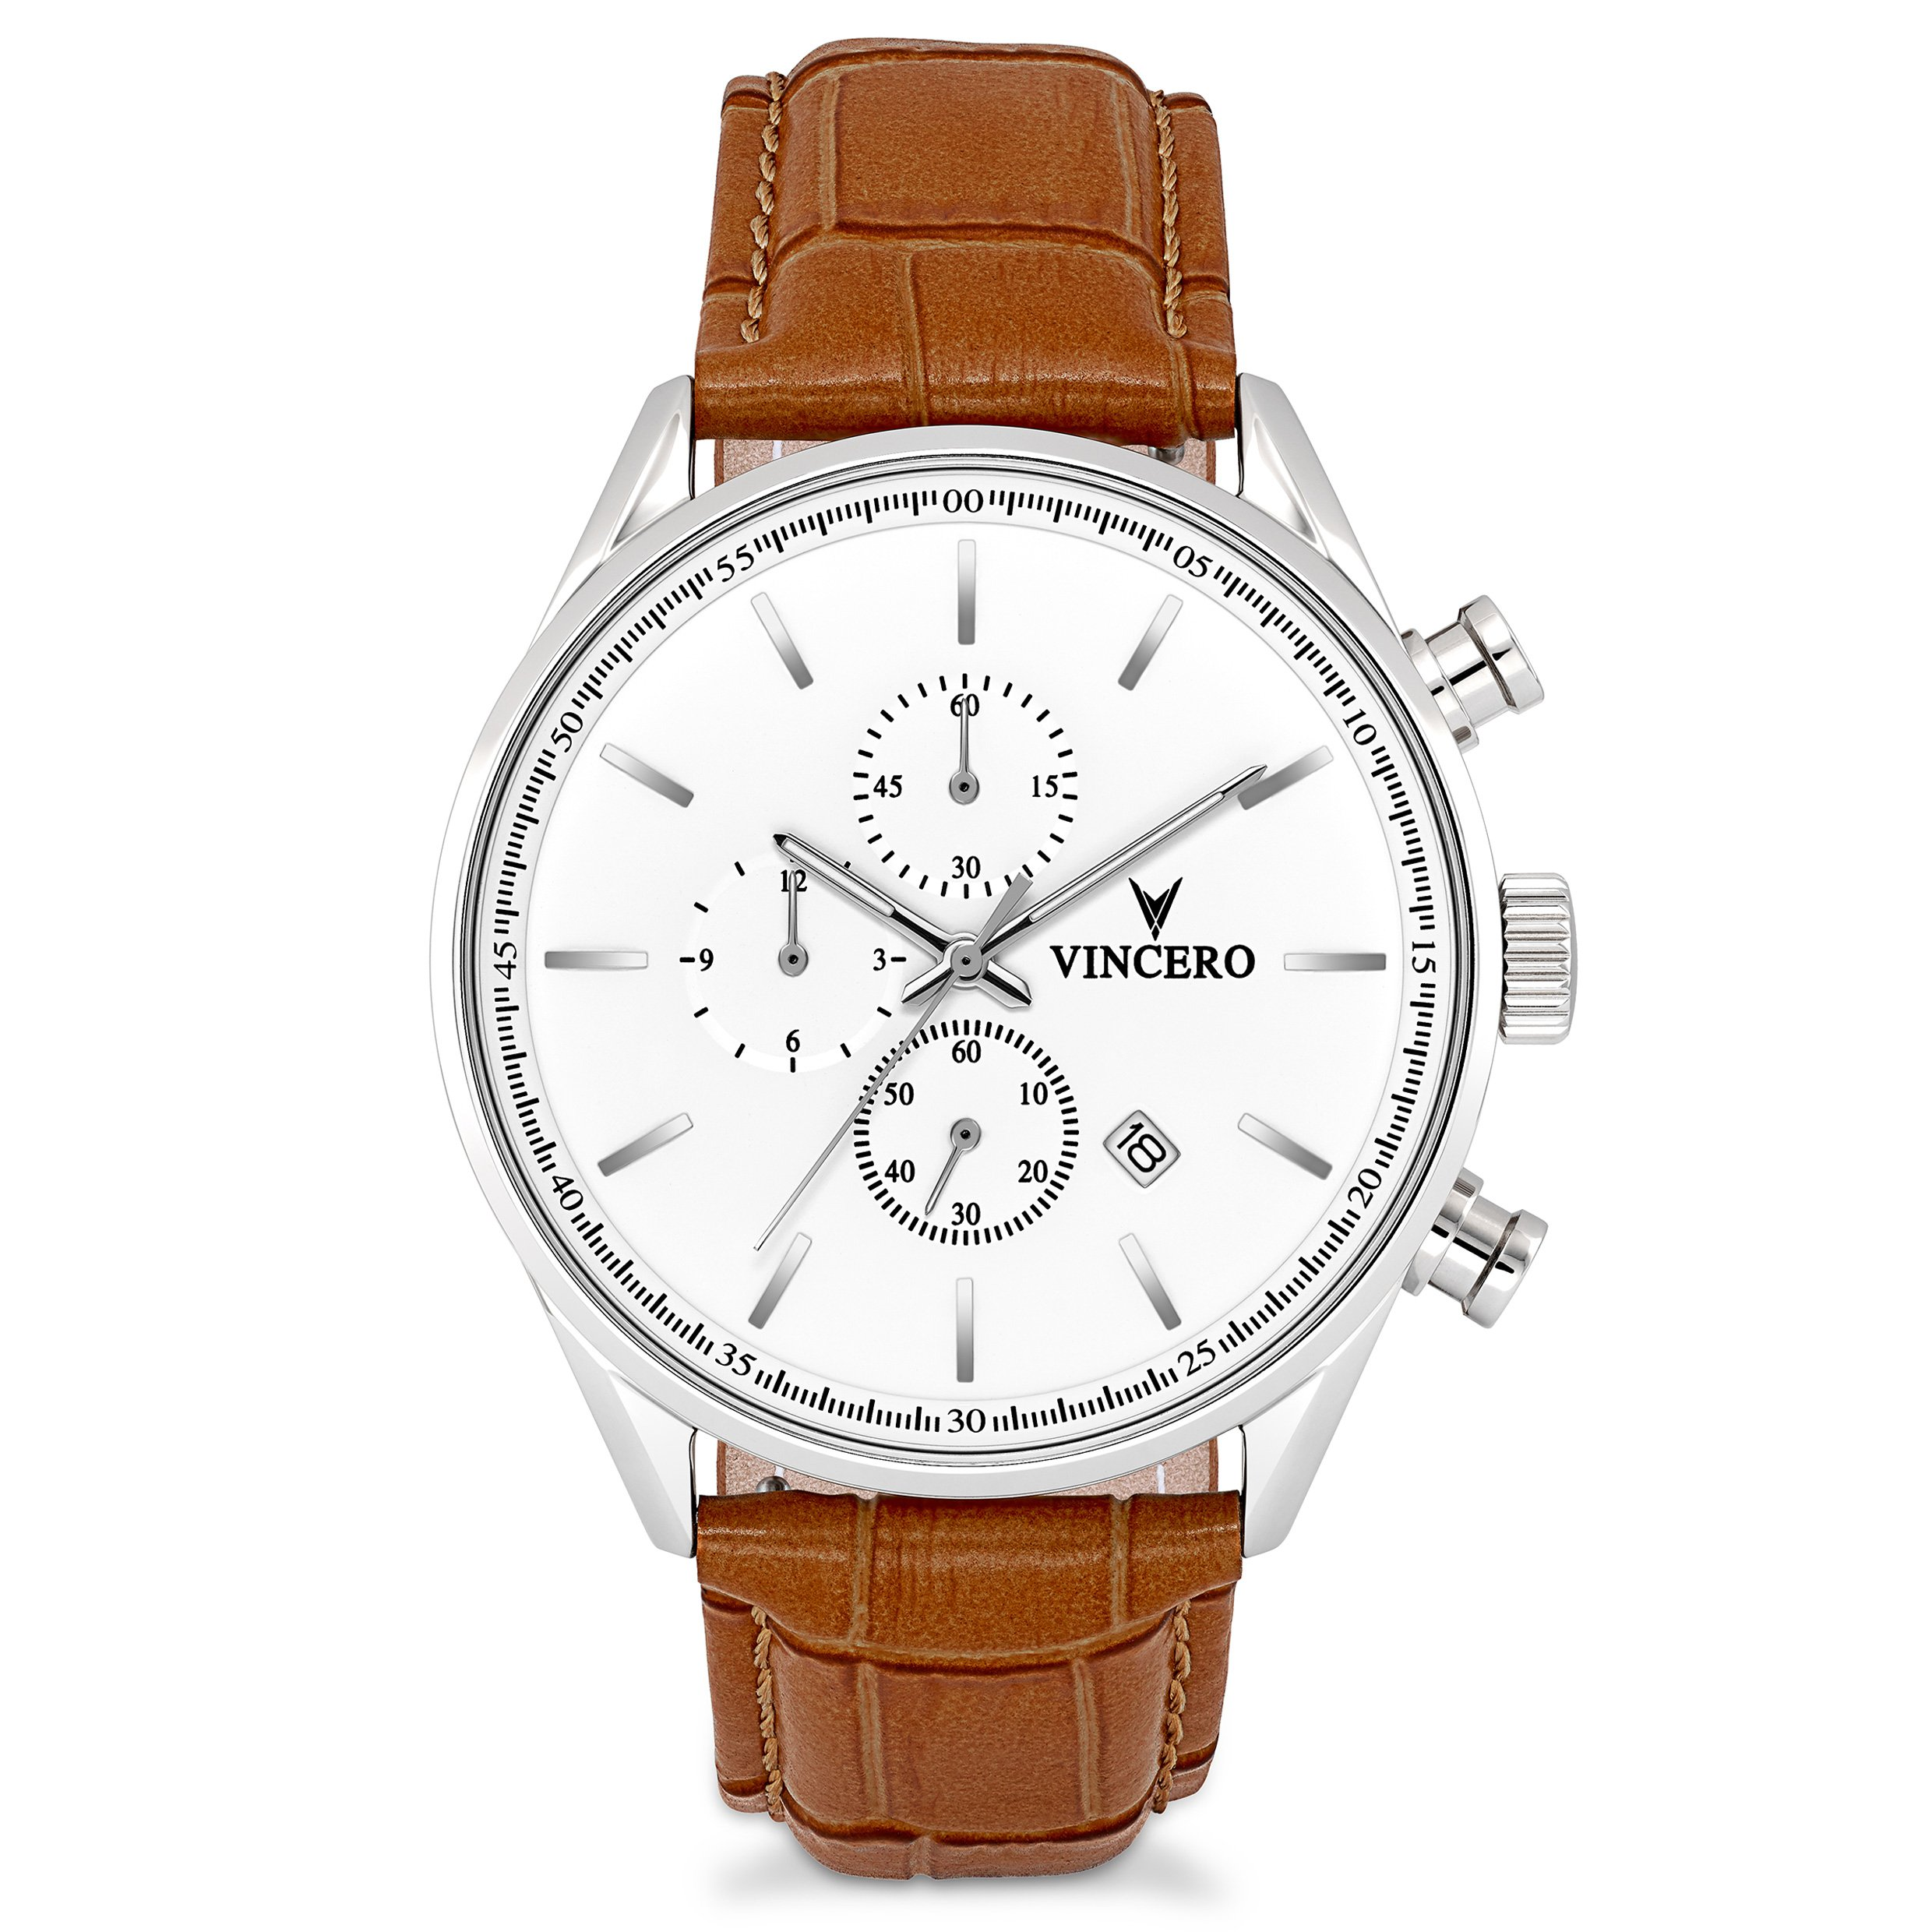 Vincero Men's Chrono S Watch - Silver/Tan with Leather Band by Vincero